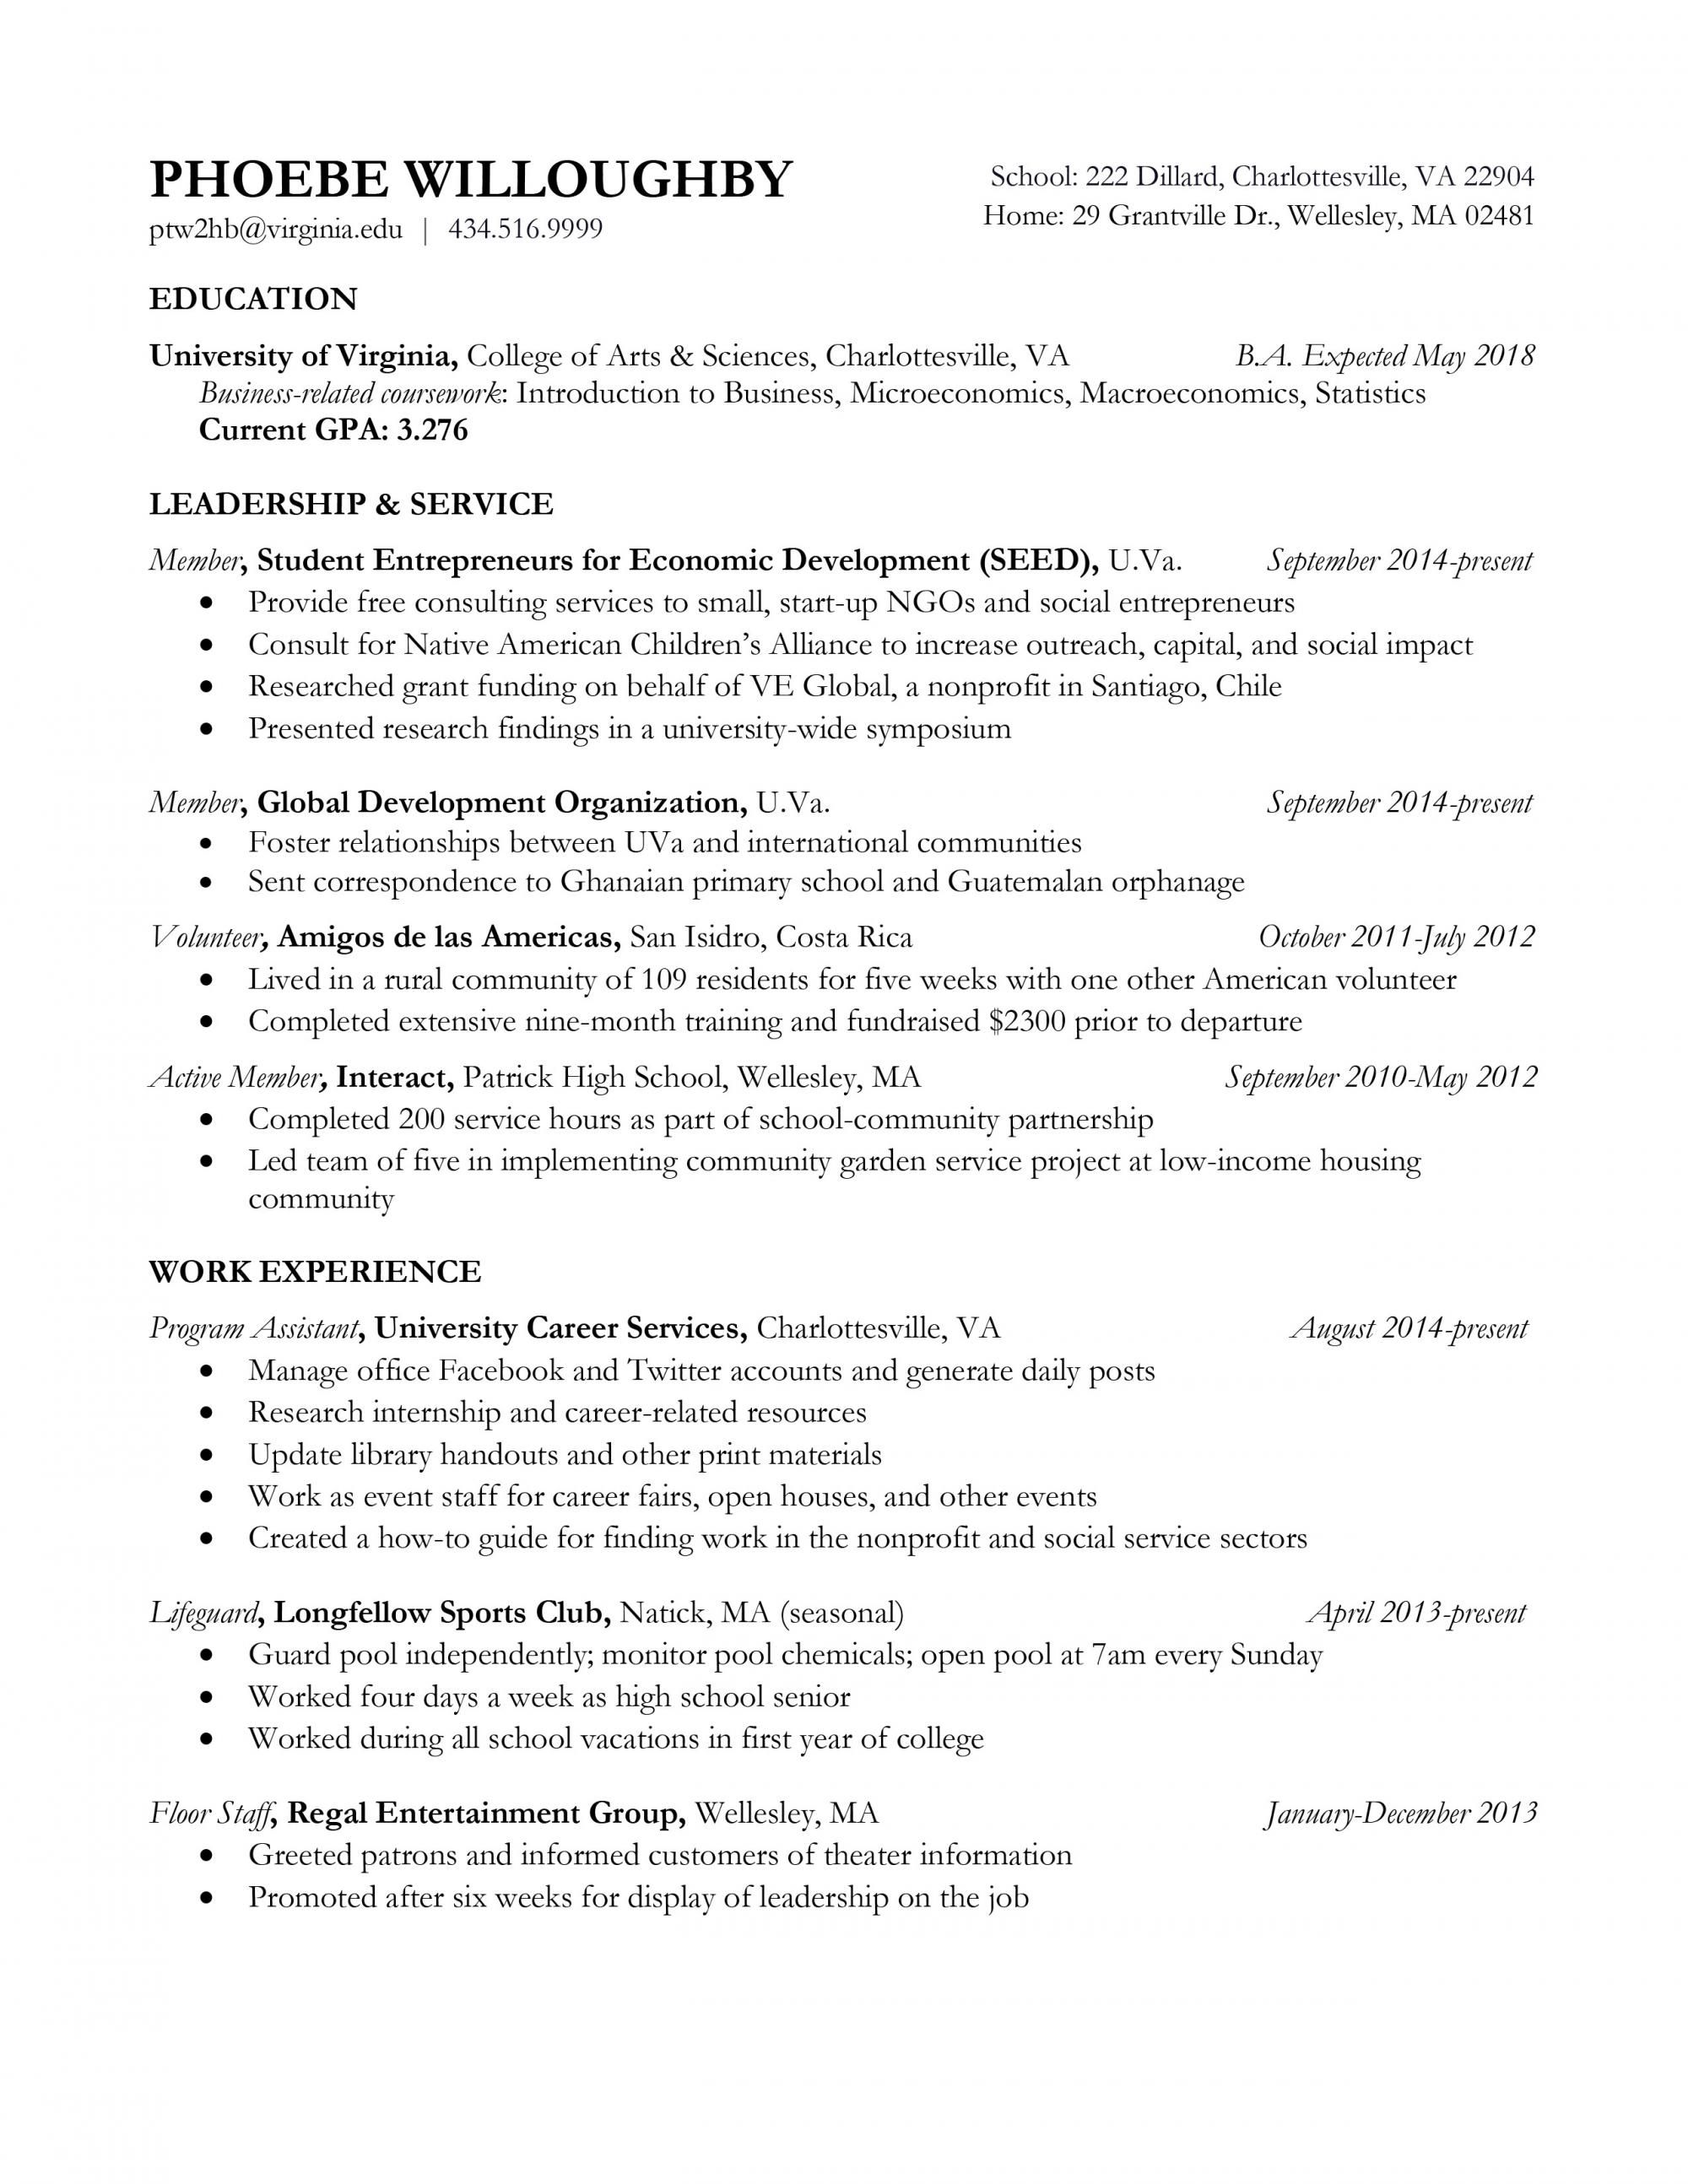 Resume Examples 2013 Resume Examples University  Pinterest  Resume Examples And .